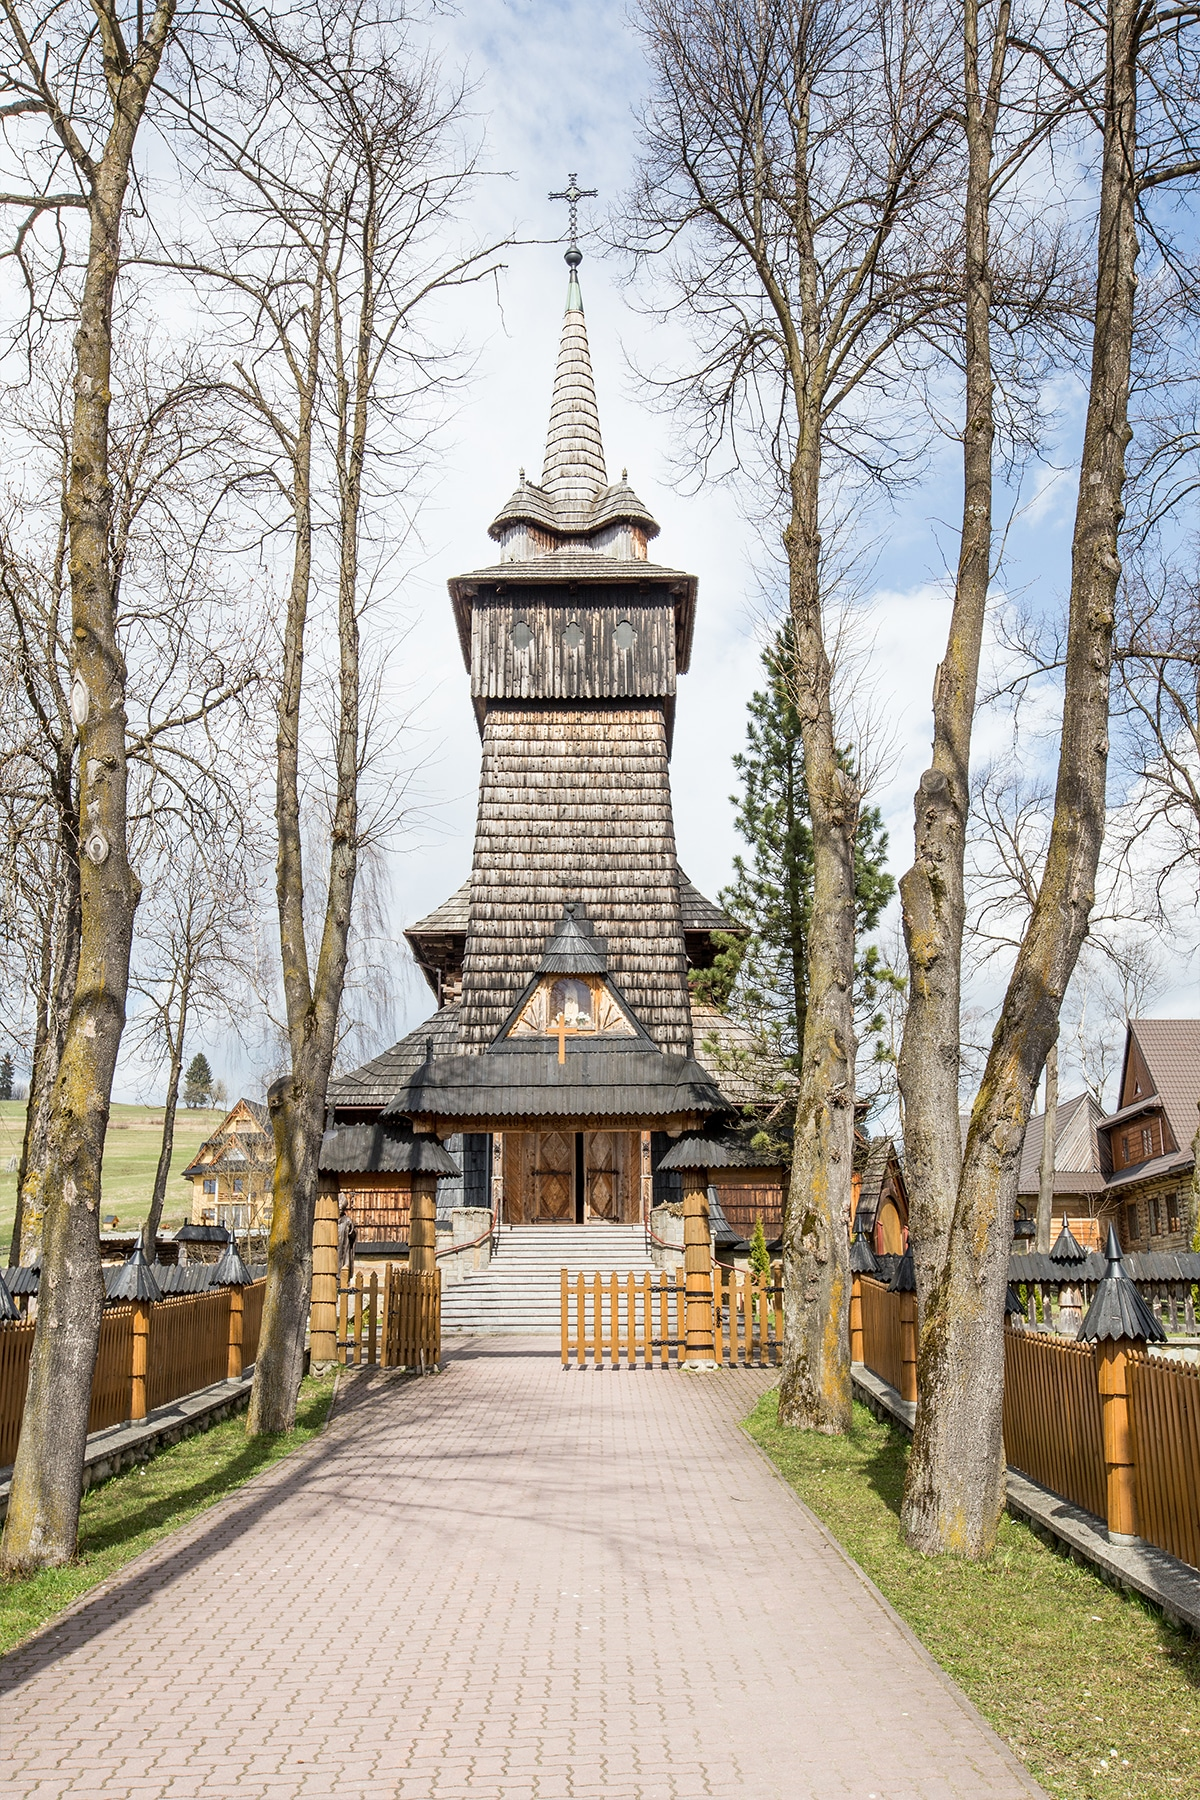 Wooden town outside of Zakopane Poland- this church is so cute!